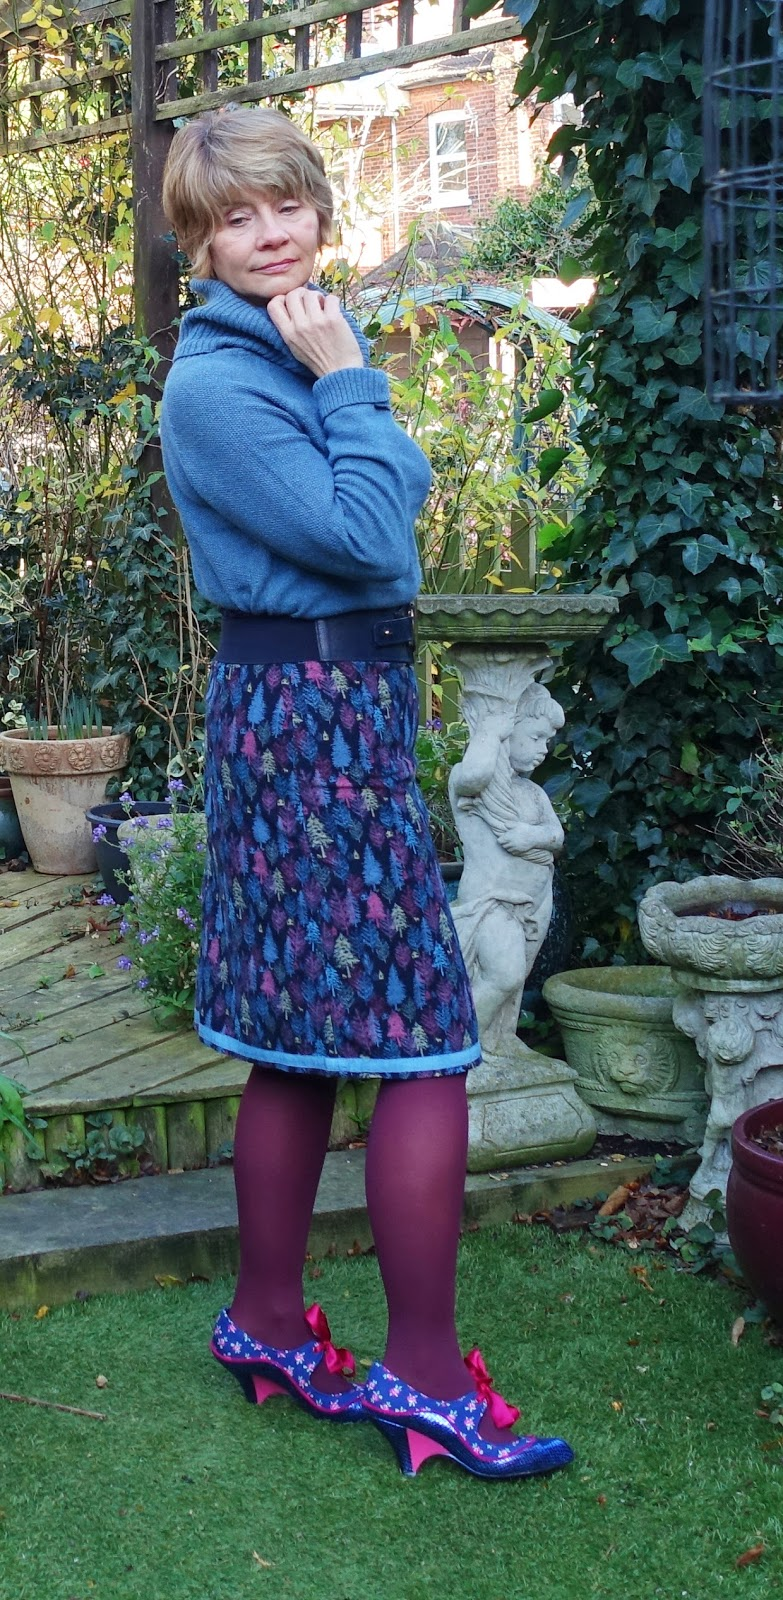 Image showing a 50 plus woman wearing a patterned skirt with a tree print in blue and mauve shades and a toning blue sweater